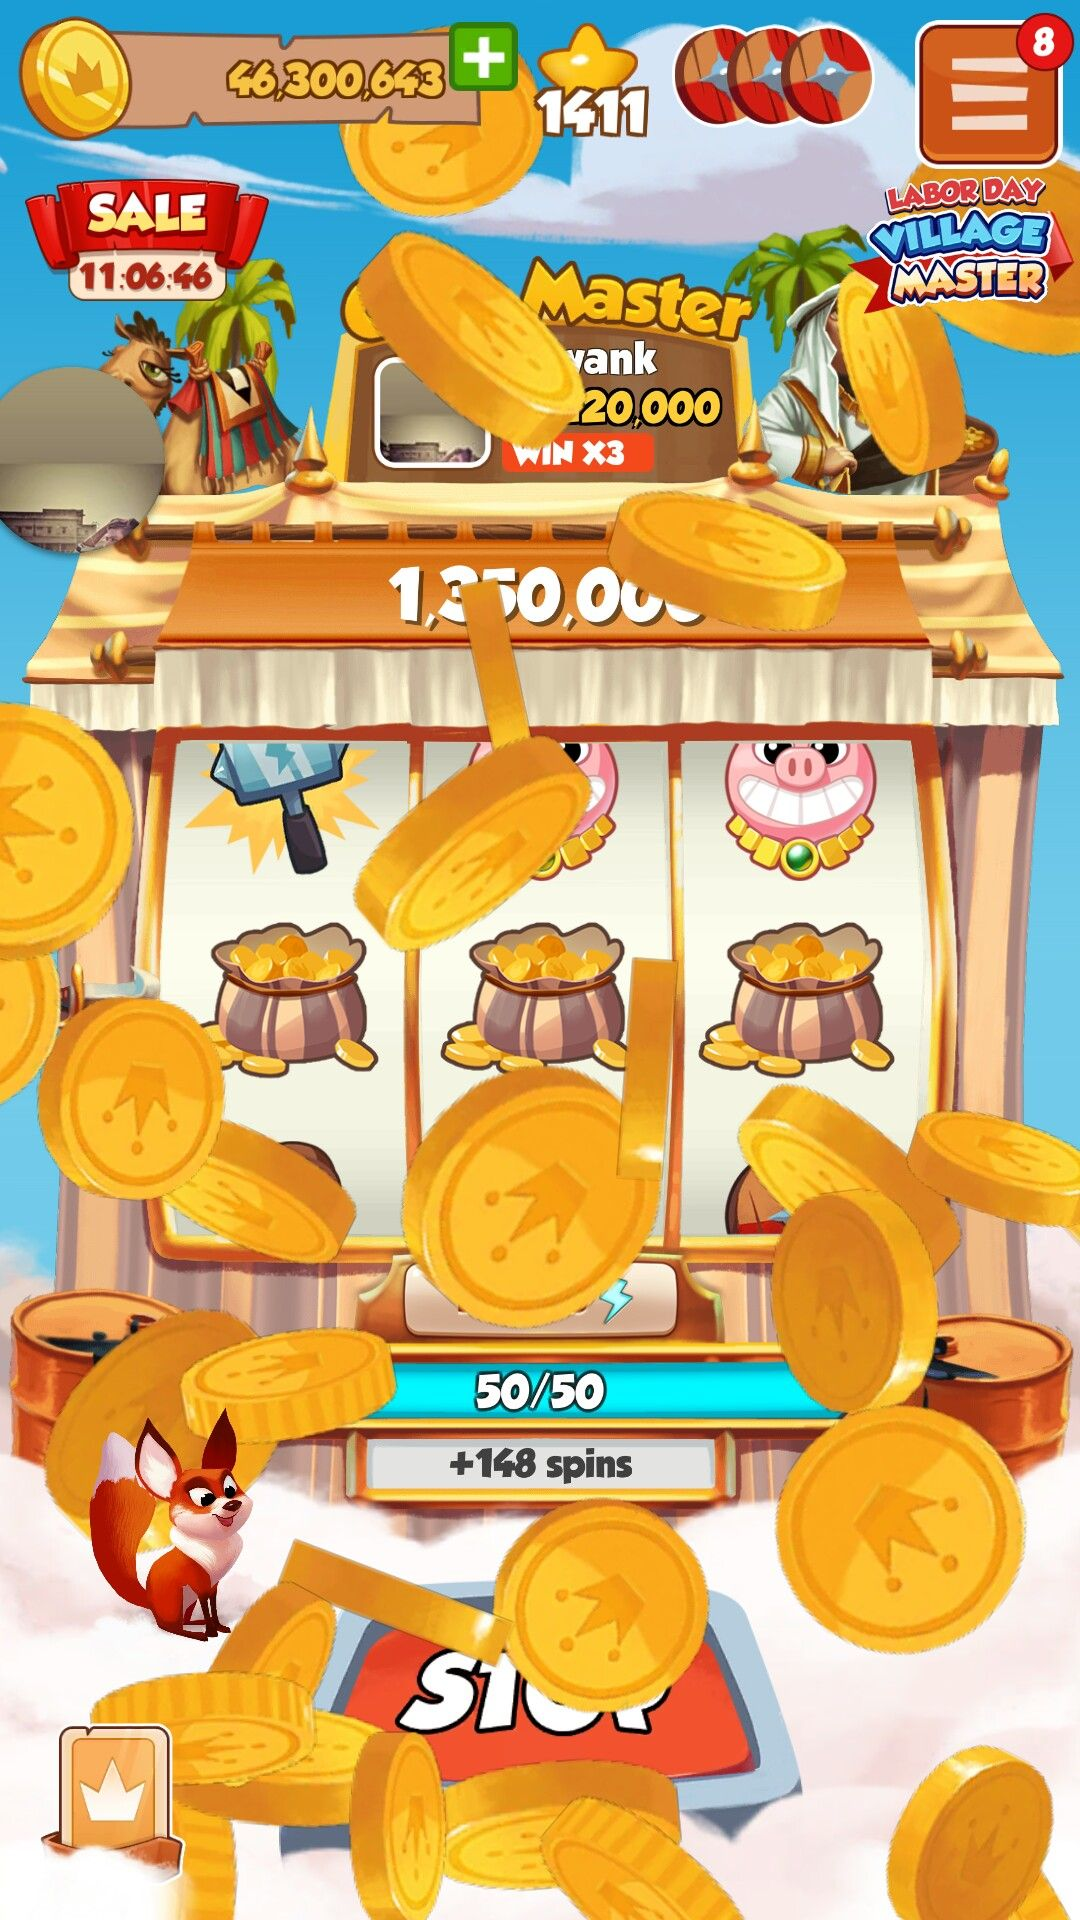 Pin by Himakshiba Gohil on Coin Master Coin master hack